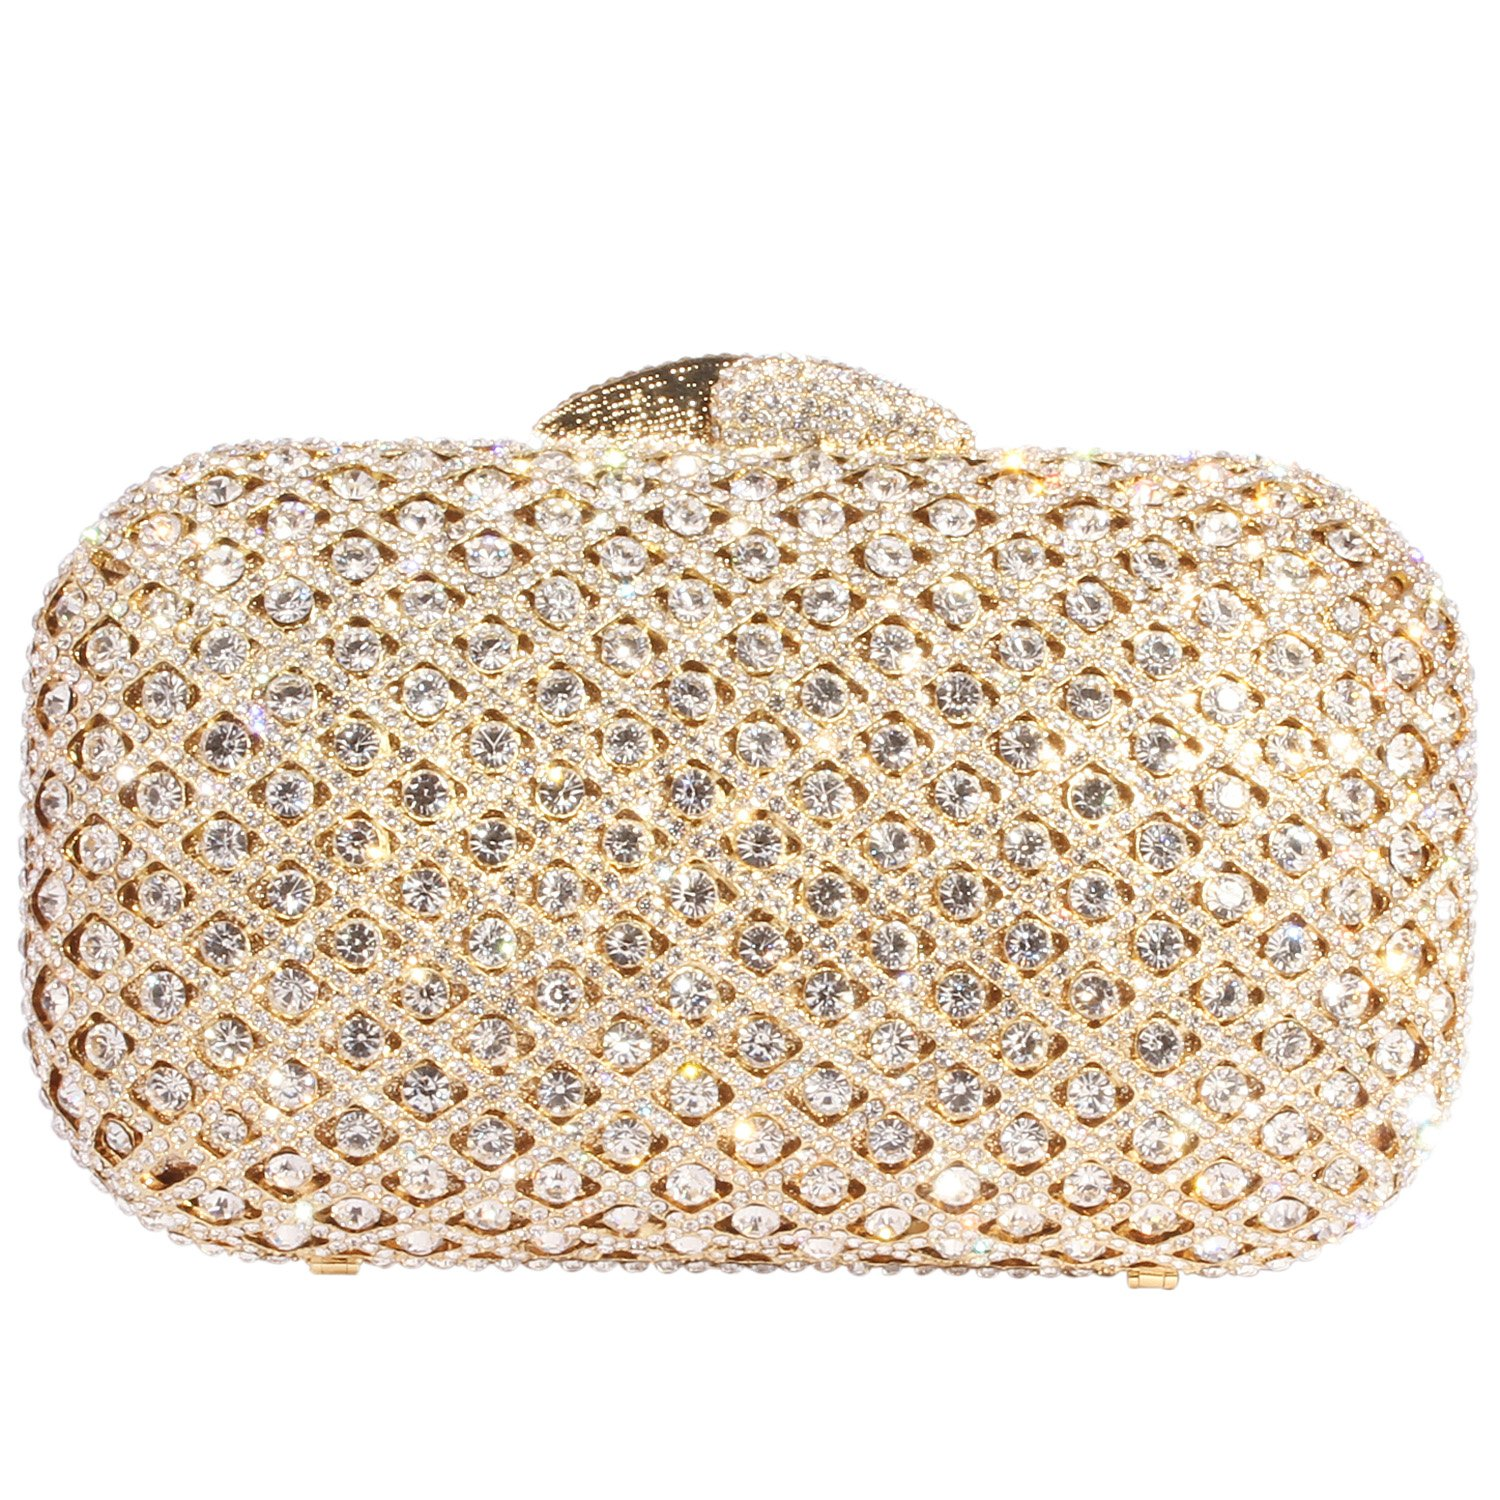 Digabi Fashion Luxury Rhinestone Purses Europe New Style women Crystal Evening Clutch Bags (One Size : 6.9 IN (L) x 4.3 IN (H) x 1.96 IN (W), White Crystal - Gold Plated) by Digabi